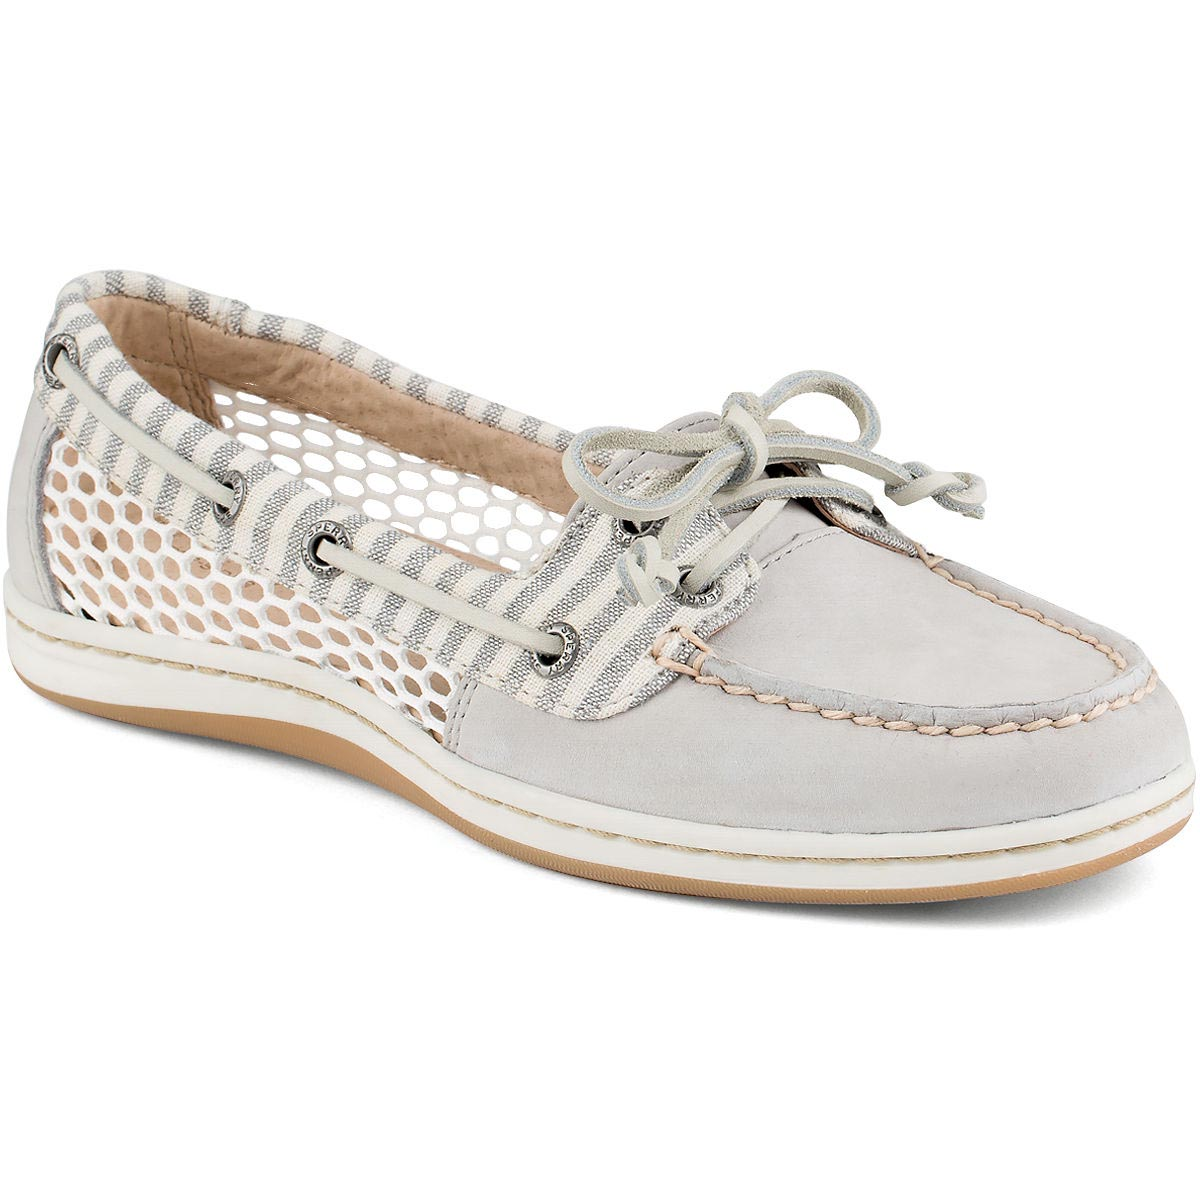 Sperry Women's Firefish Stripe Mesh